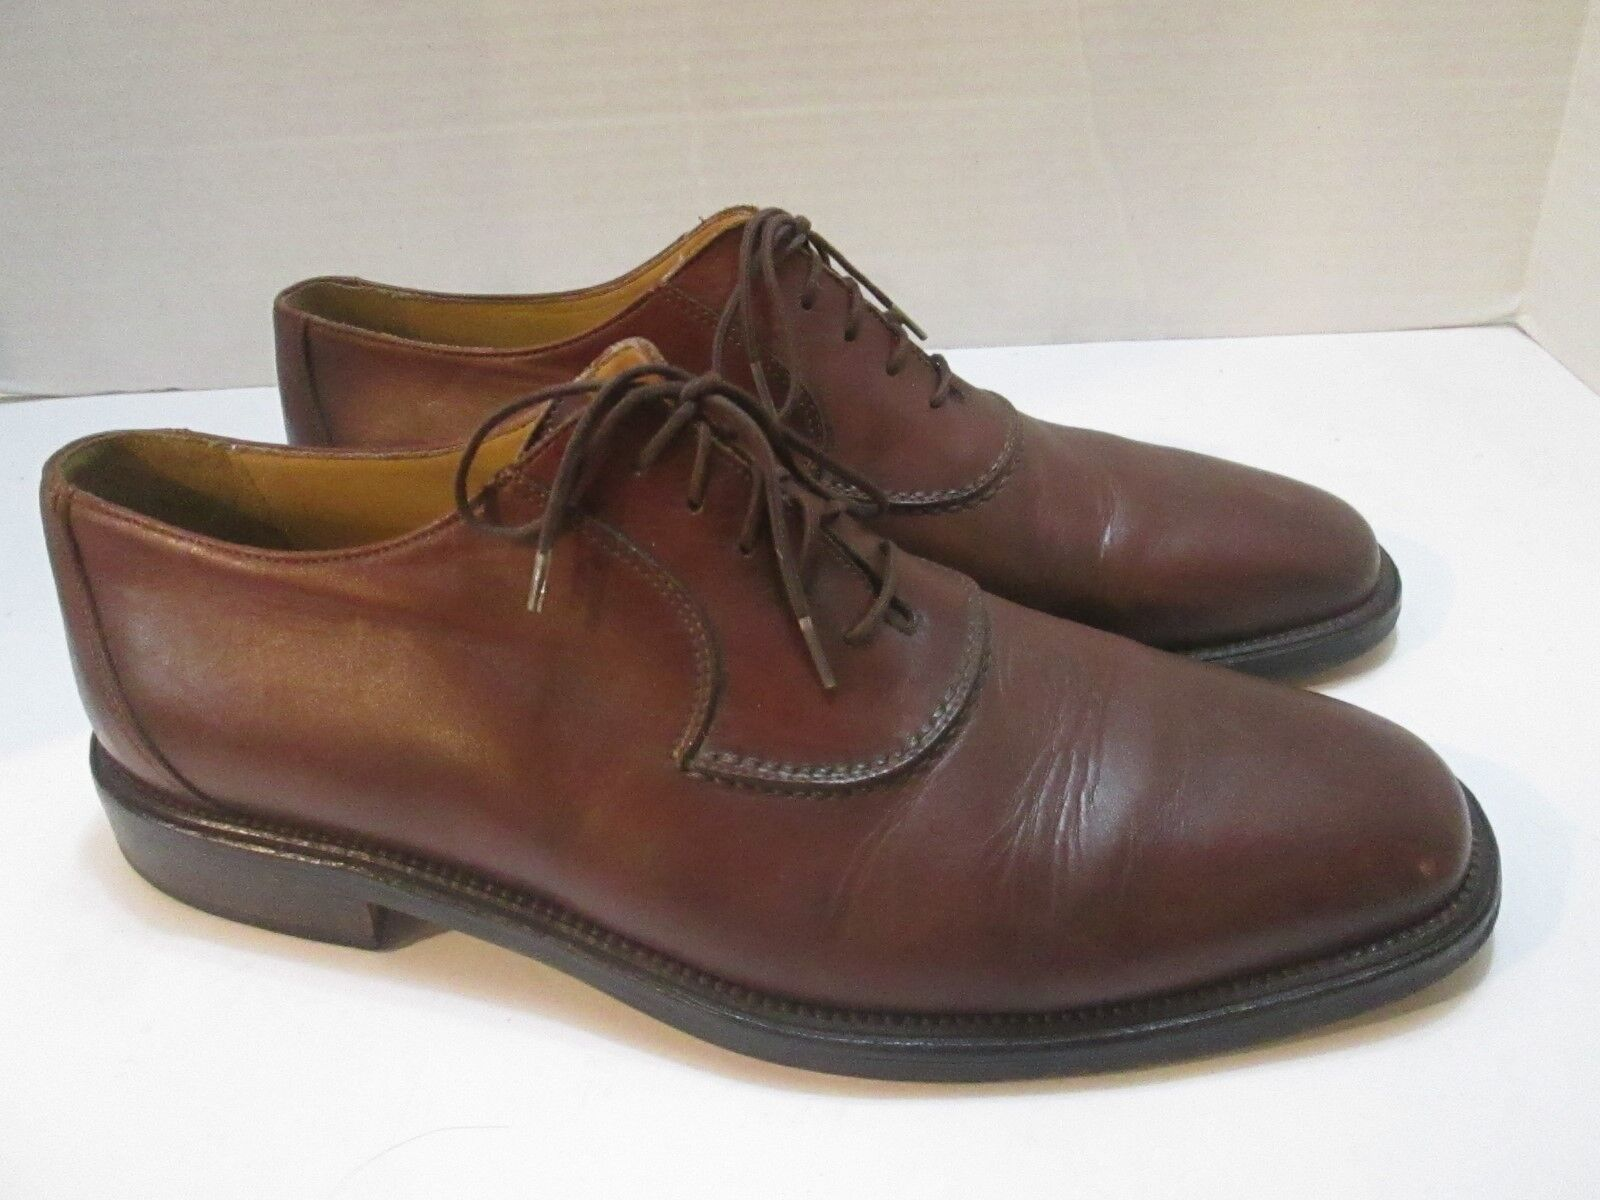 JOHNSTON & MURPHY Domani Mens 9.5 M Brown Leather Oxford Dress shoes